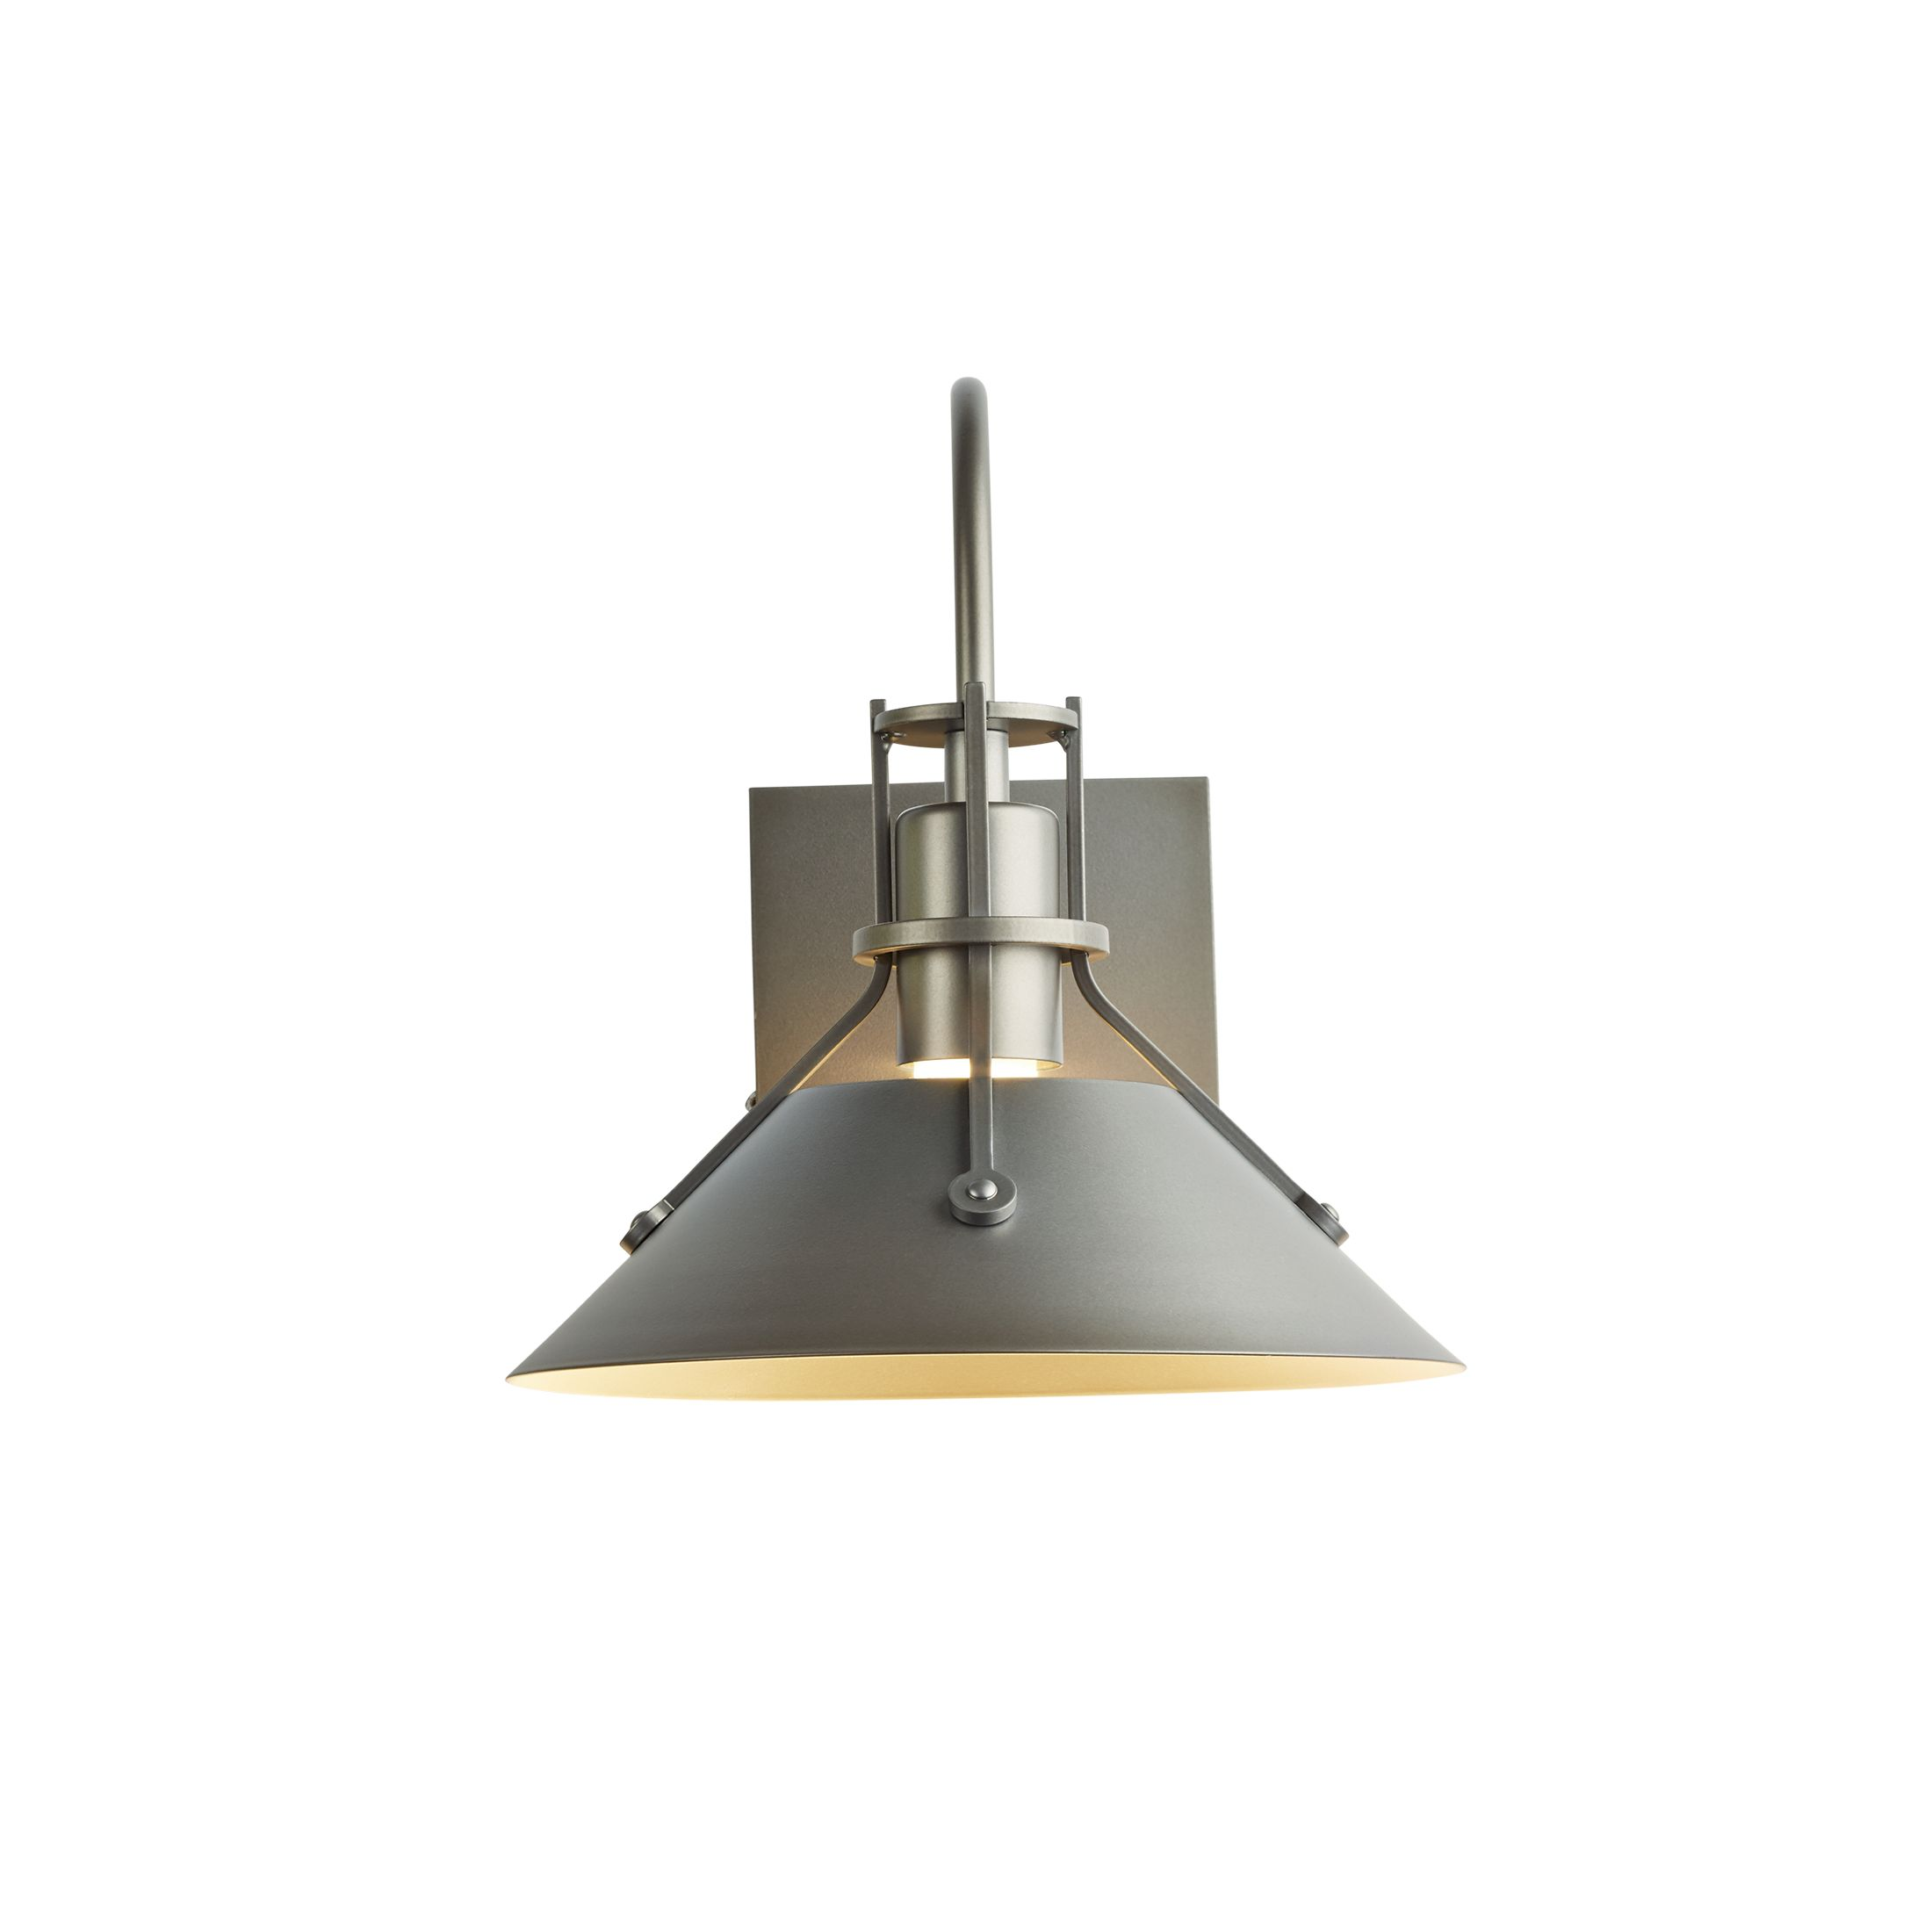 Thumbnail for Henry Small Interior Sconce